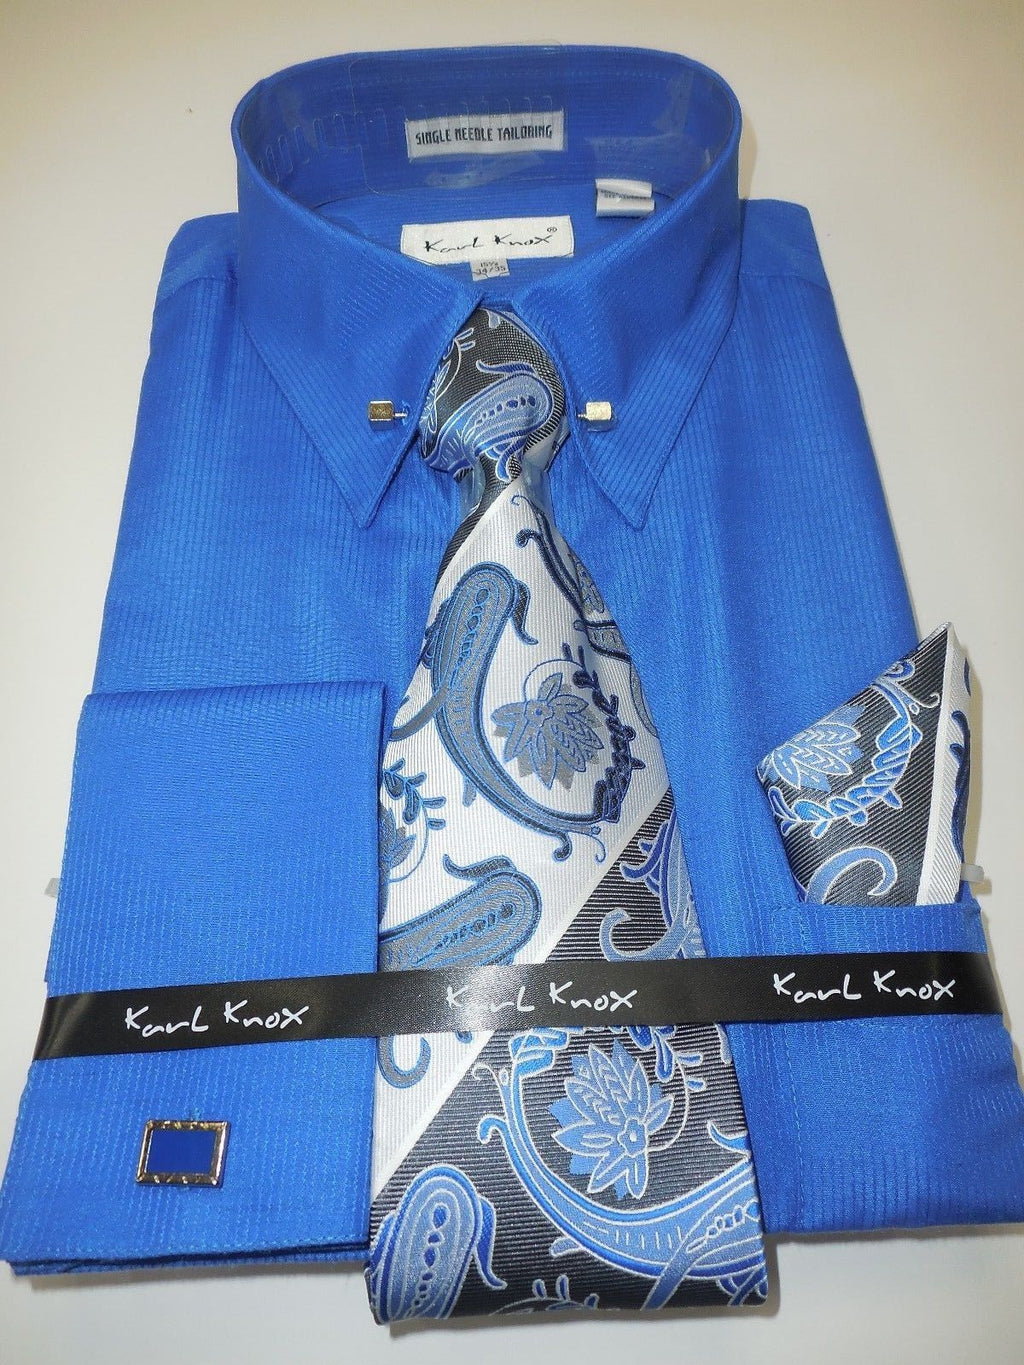 Mens Royal Blue Pin Eyelet French Cuff Dress Shirt Paisley Tie Karl Knox 4376 - Nader Fashion Las Vegas